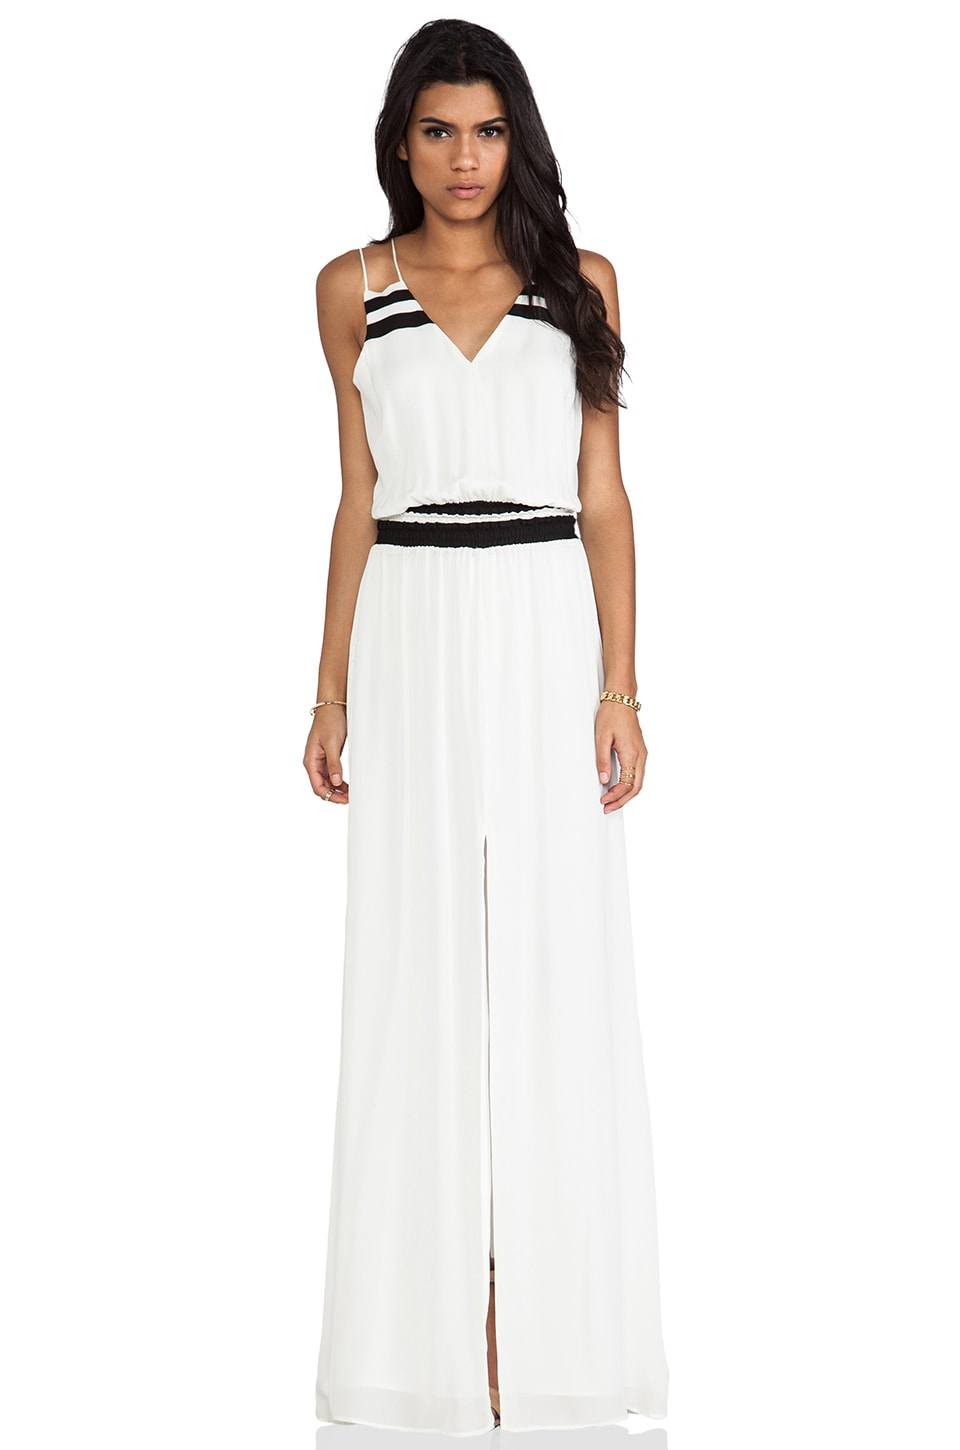 Parker Adelaide Combo Dress in Ivory